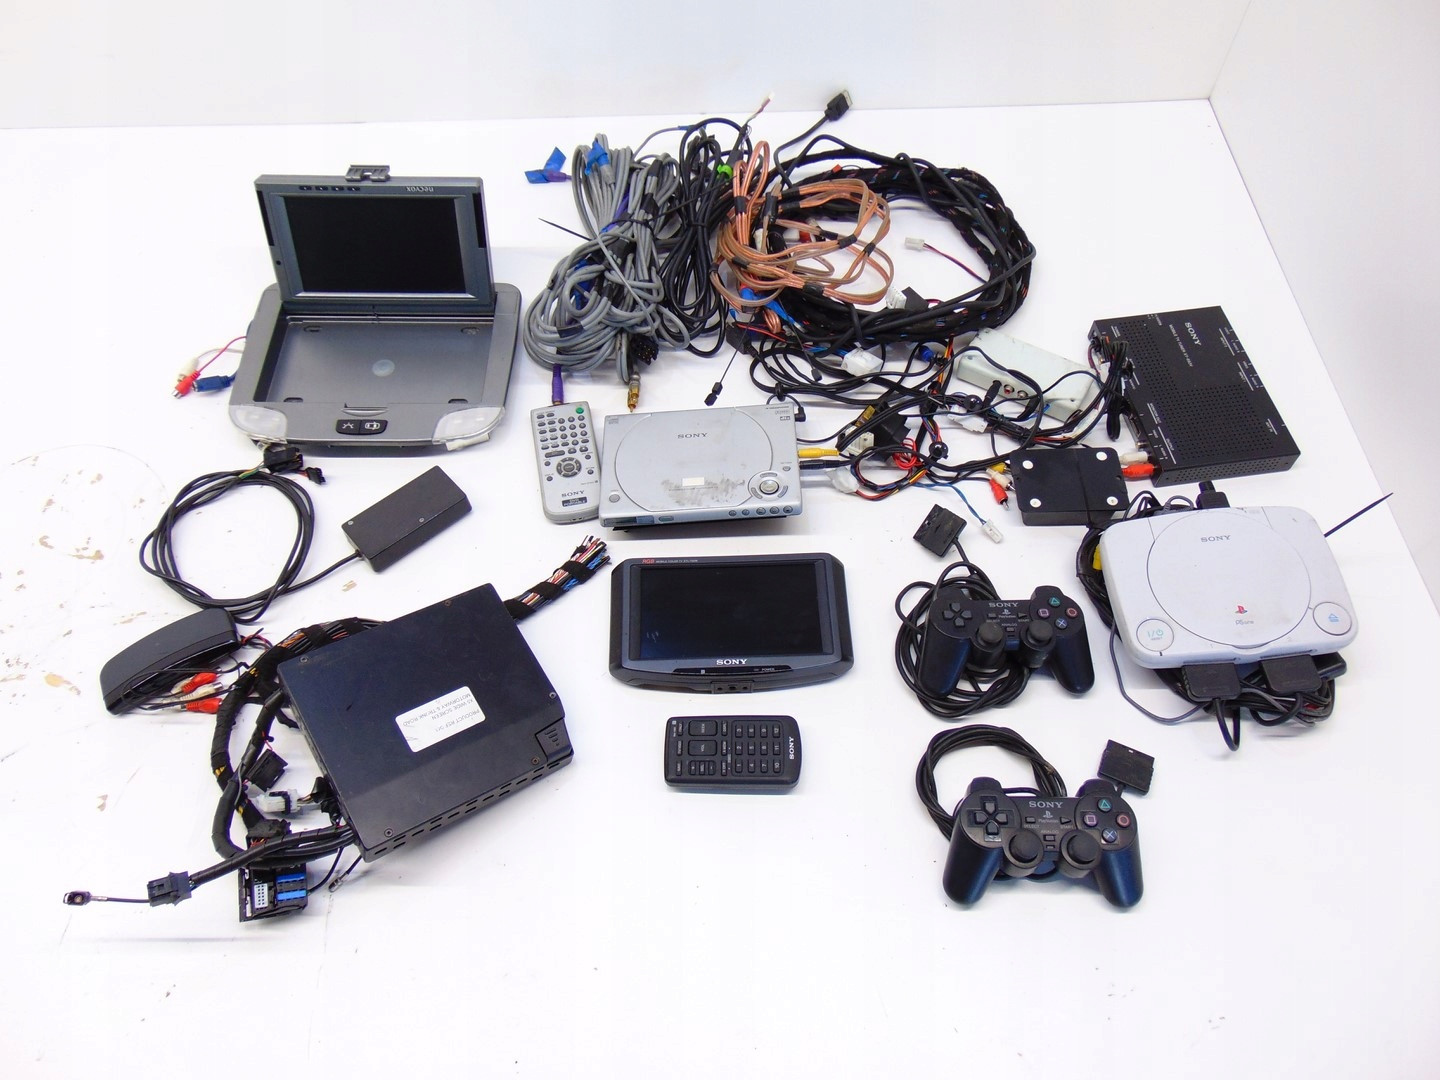 Sony Playstation 2 Console Bunch of Monitors Tuner